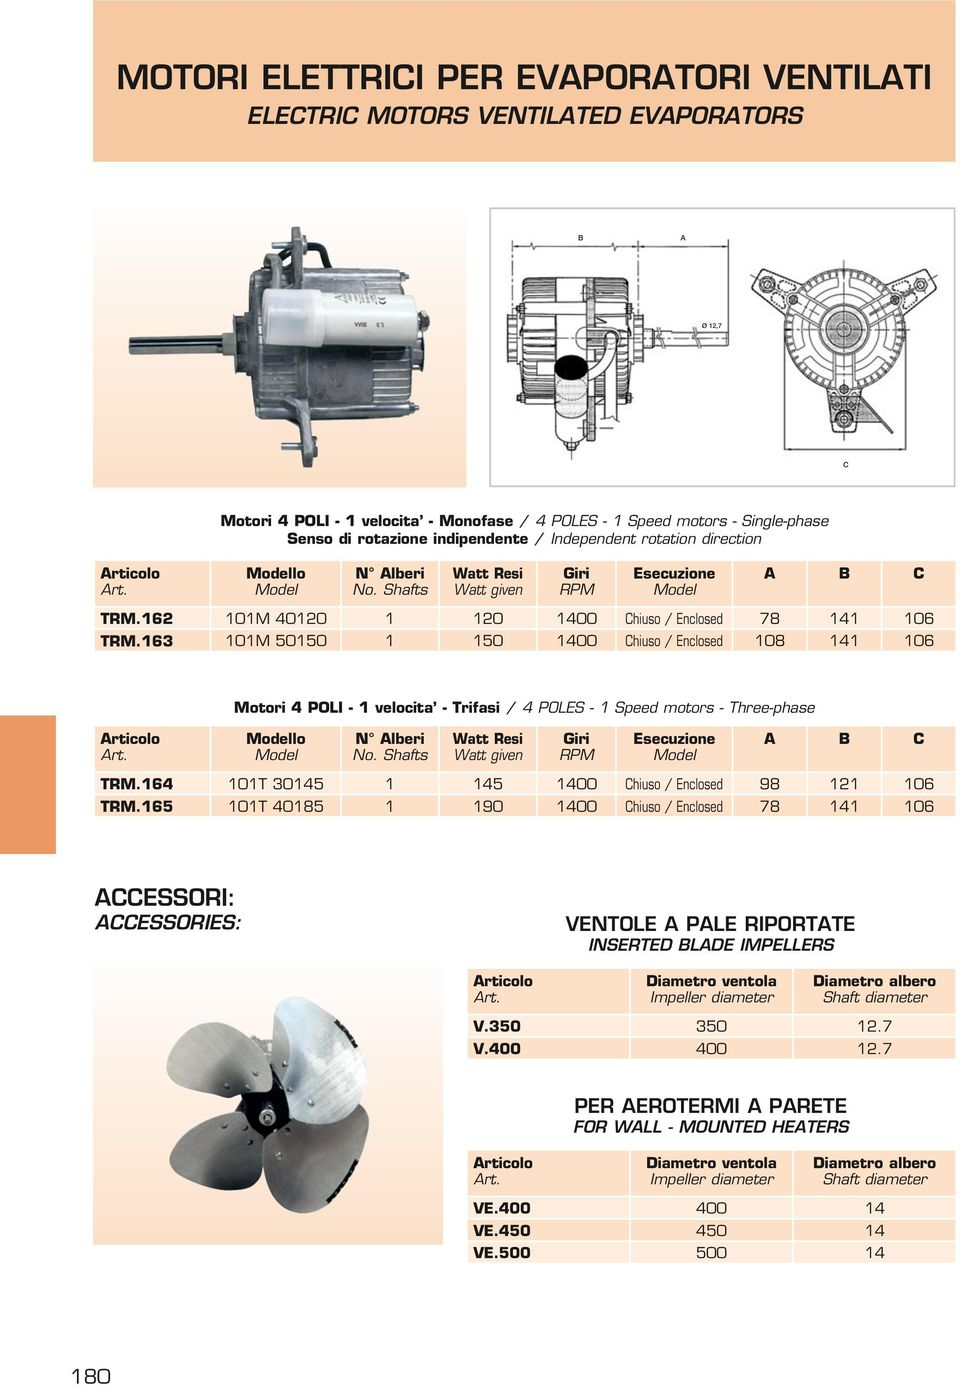 163 101M 50150 1 150 1400 Chiuso / Enclosed 108 141 106 Motori 4 POLI - 1 velocita - Trifasi / 4 POLES - 1 Speed motors - Three-phase lo N lberi No. Shafts Esecuzione C TRM.